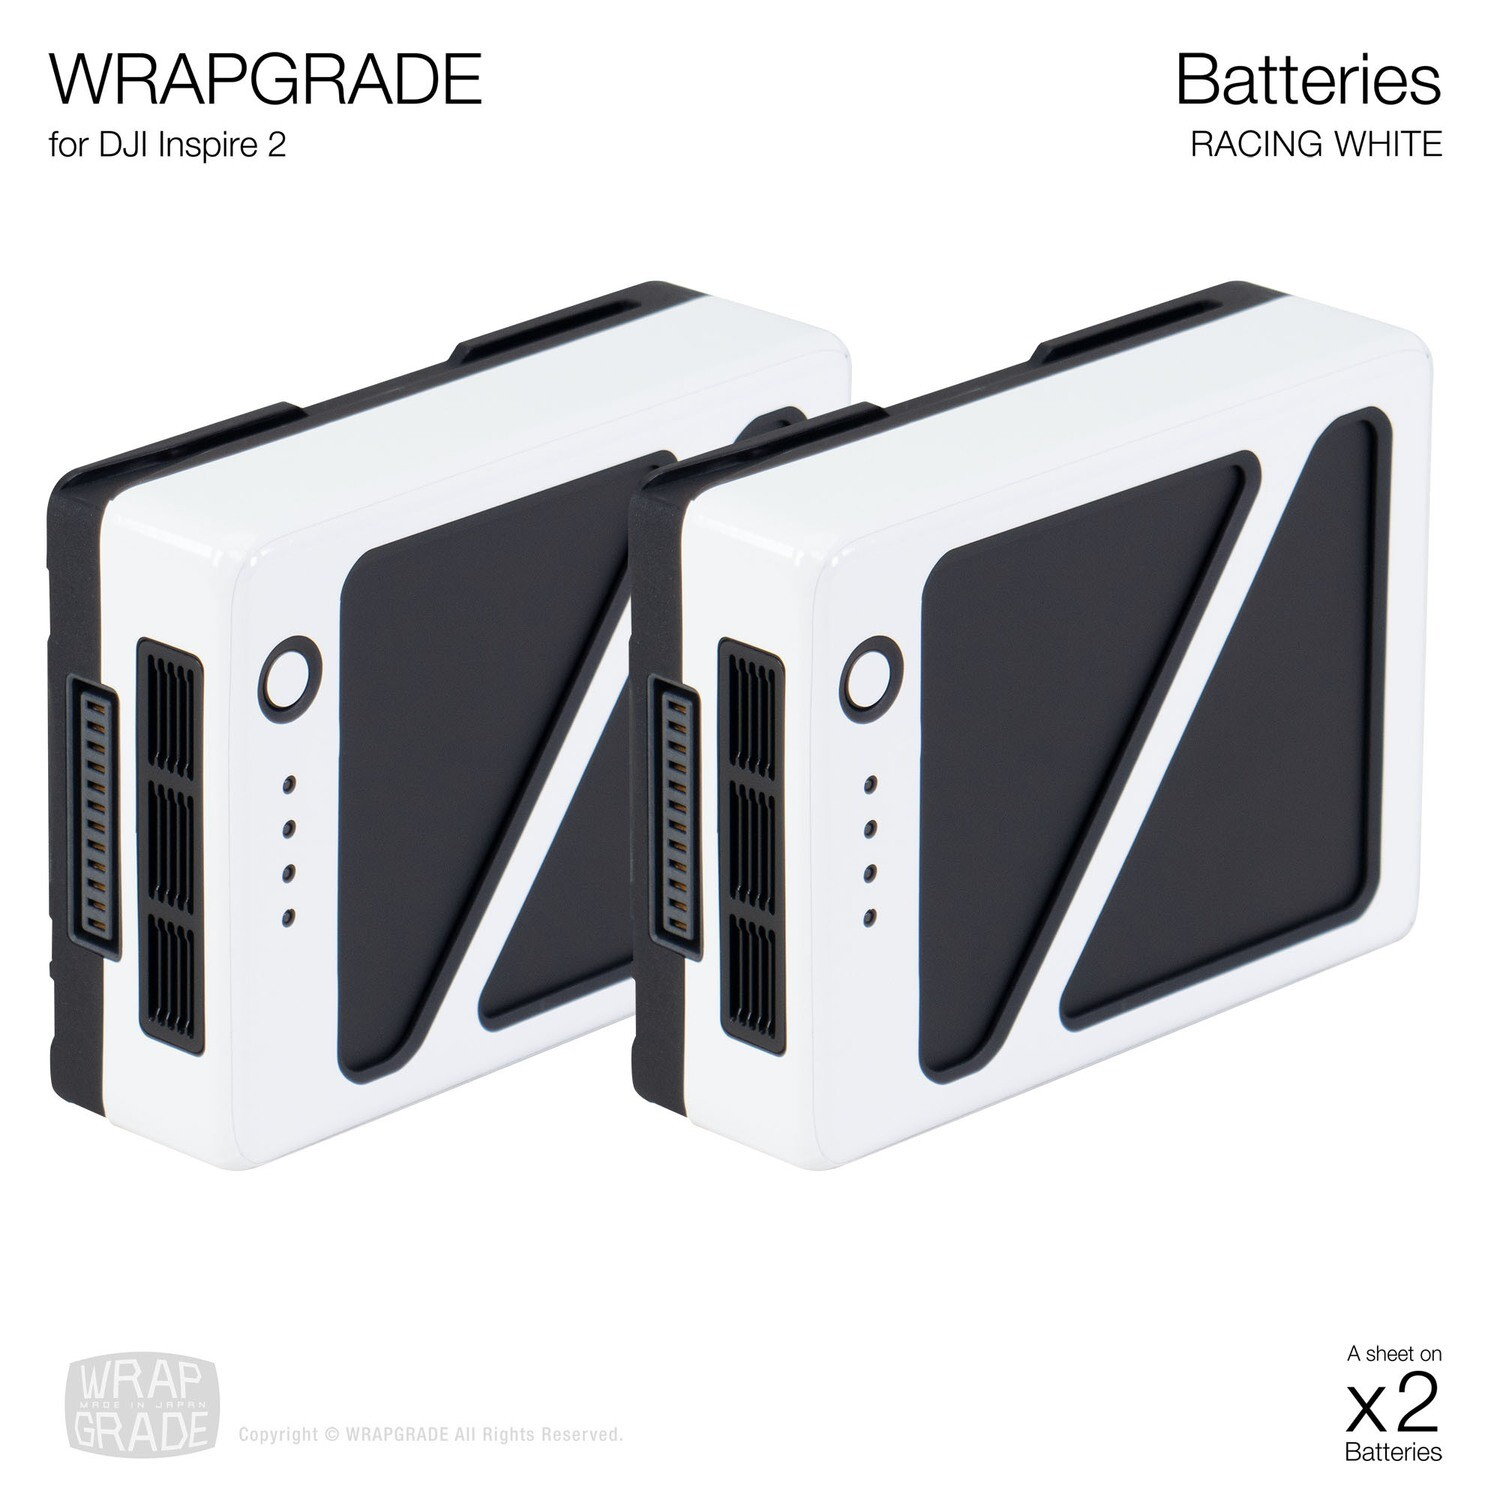 WRAPGRADE for DJI Inspire 2 | Two batteries [20 colors]